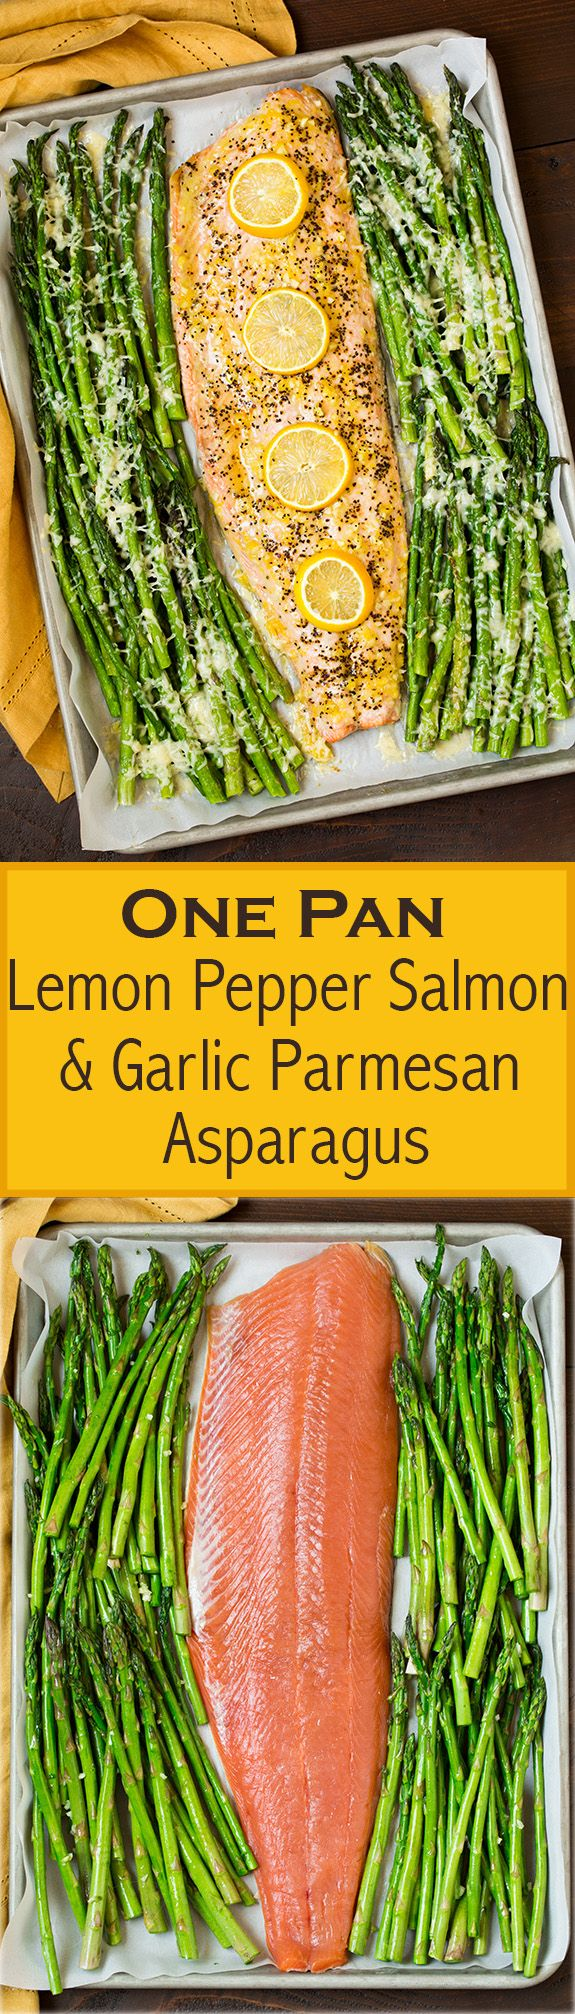 One Pan Roasted Lemon Pepper Salmon and Garlic Parmesan Asparagus - this is so easy to make and the flavor combo of the two is delicious! #fishmeal